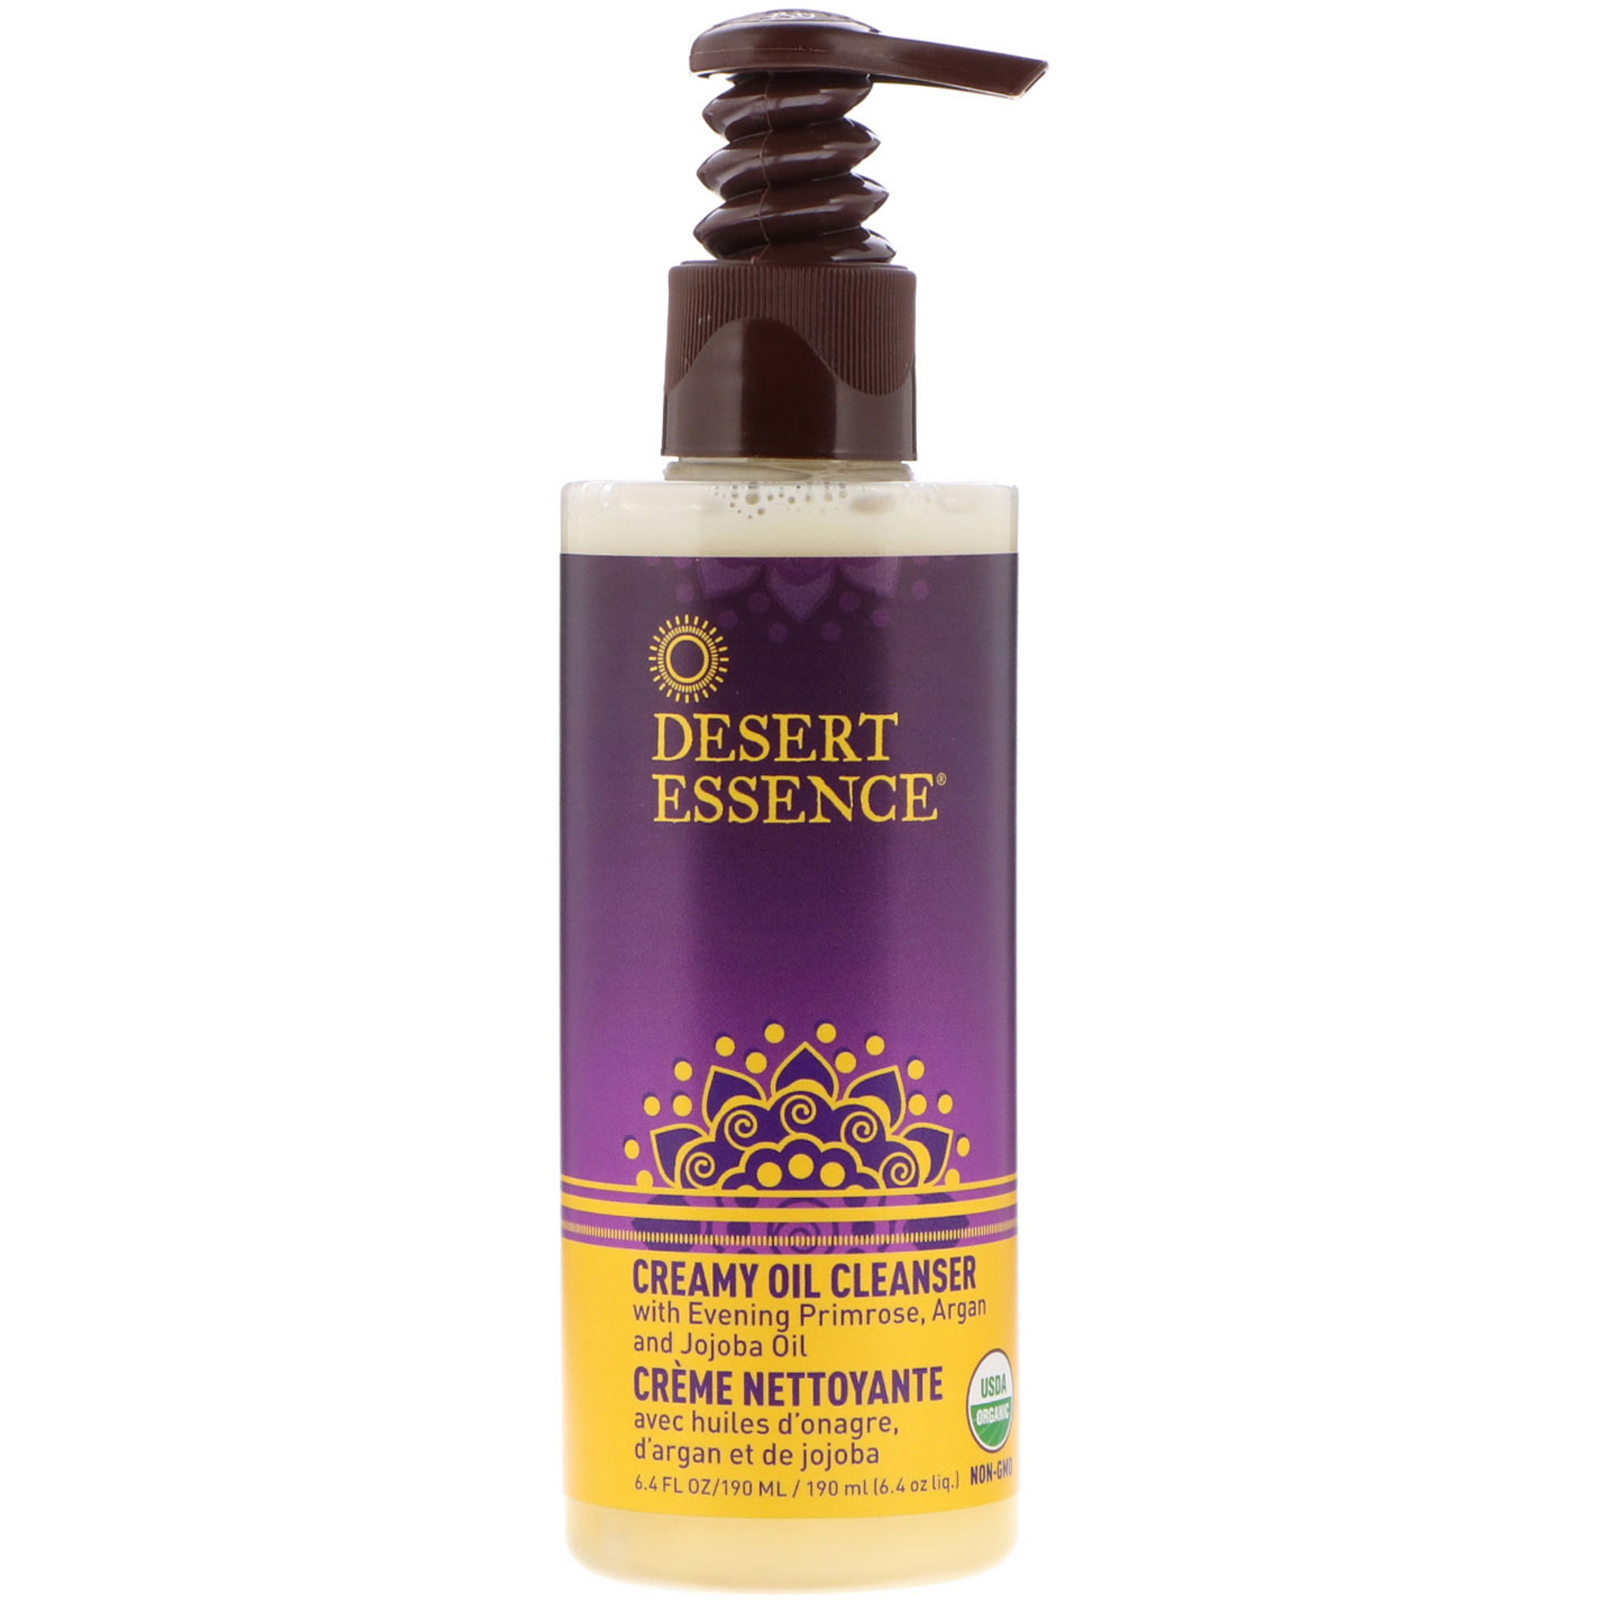 Desert Essence Creamy Oil Cleanser 6 4 Fl Oz 190 Ml